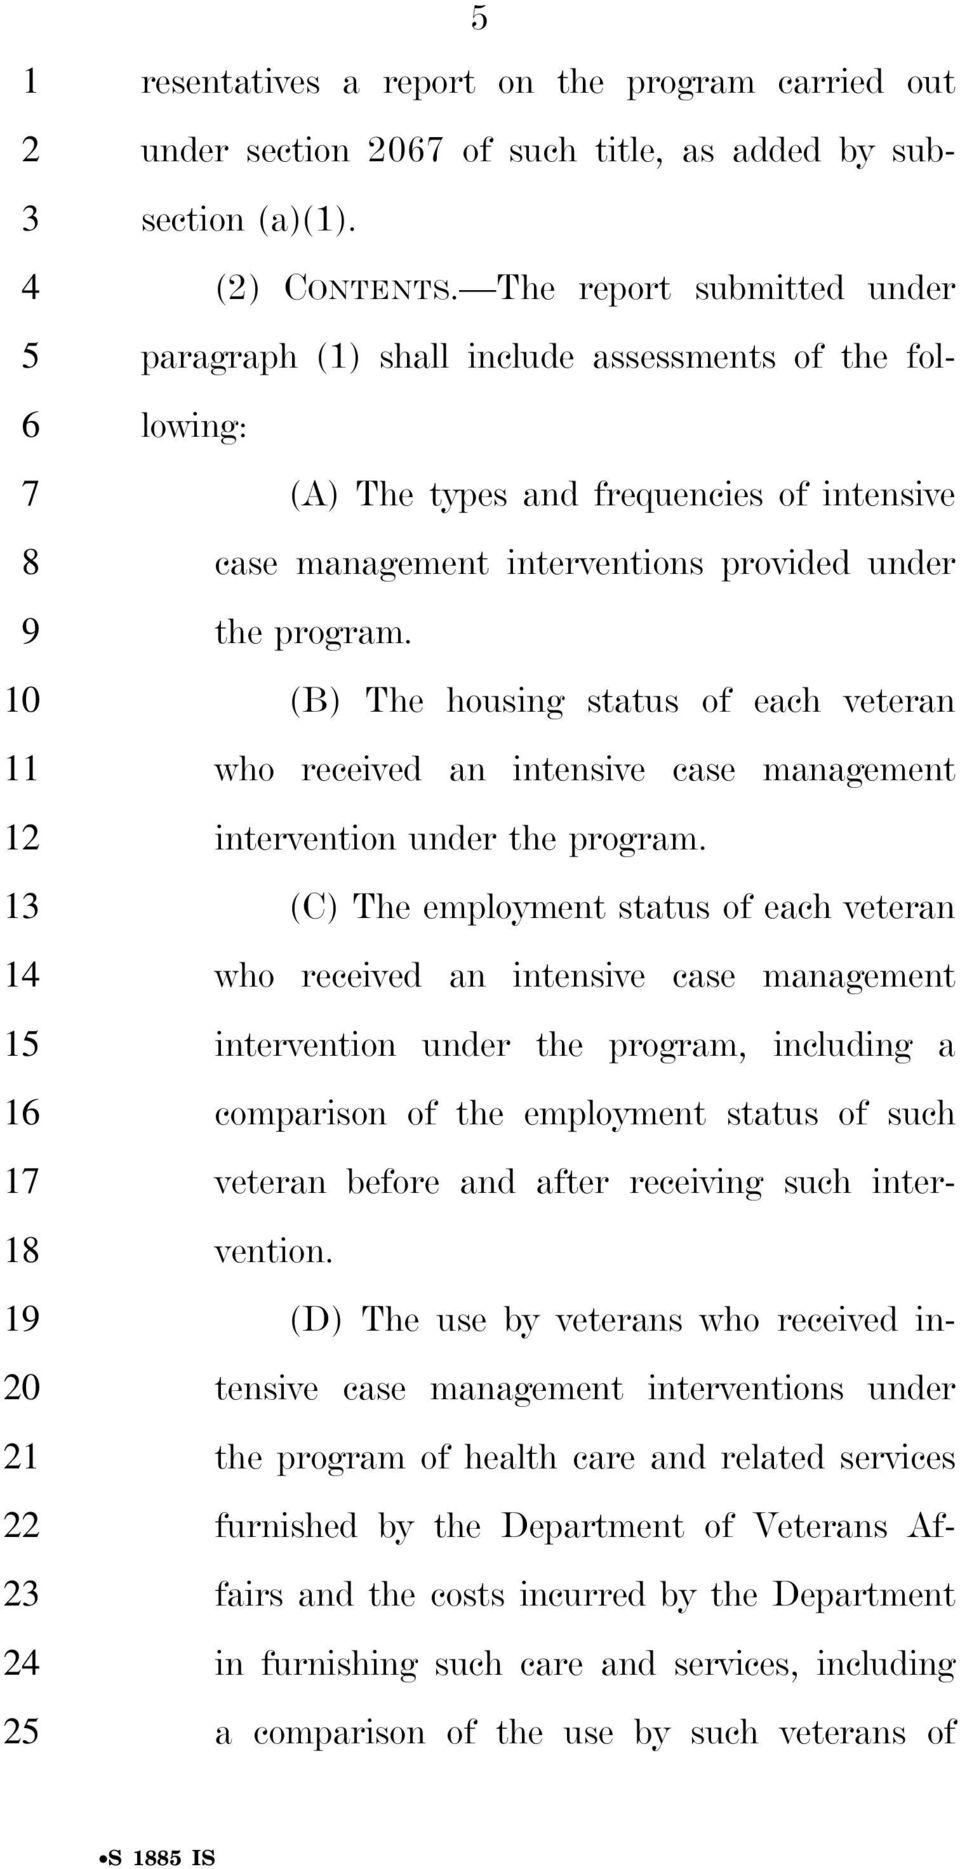 (B) The housing status of each veteran who received an intensive case management intervention under the program.